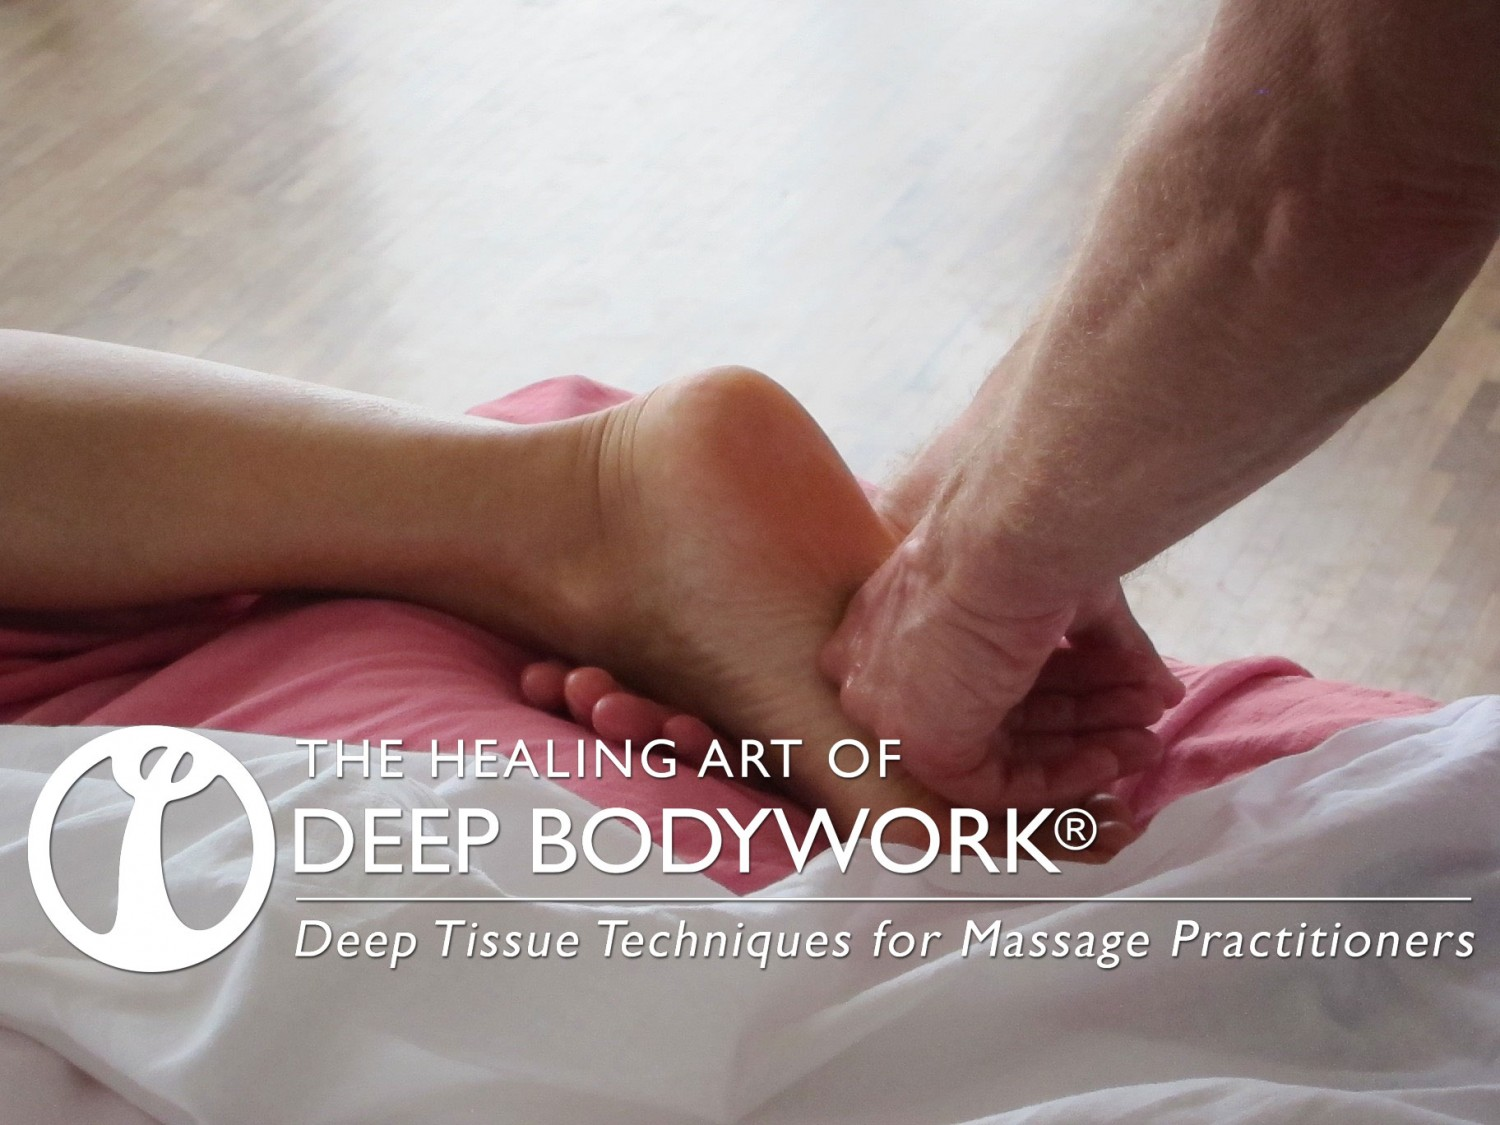 The Healing Art of Deep Bodywork: V